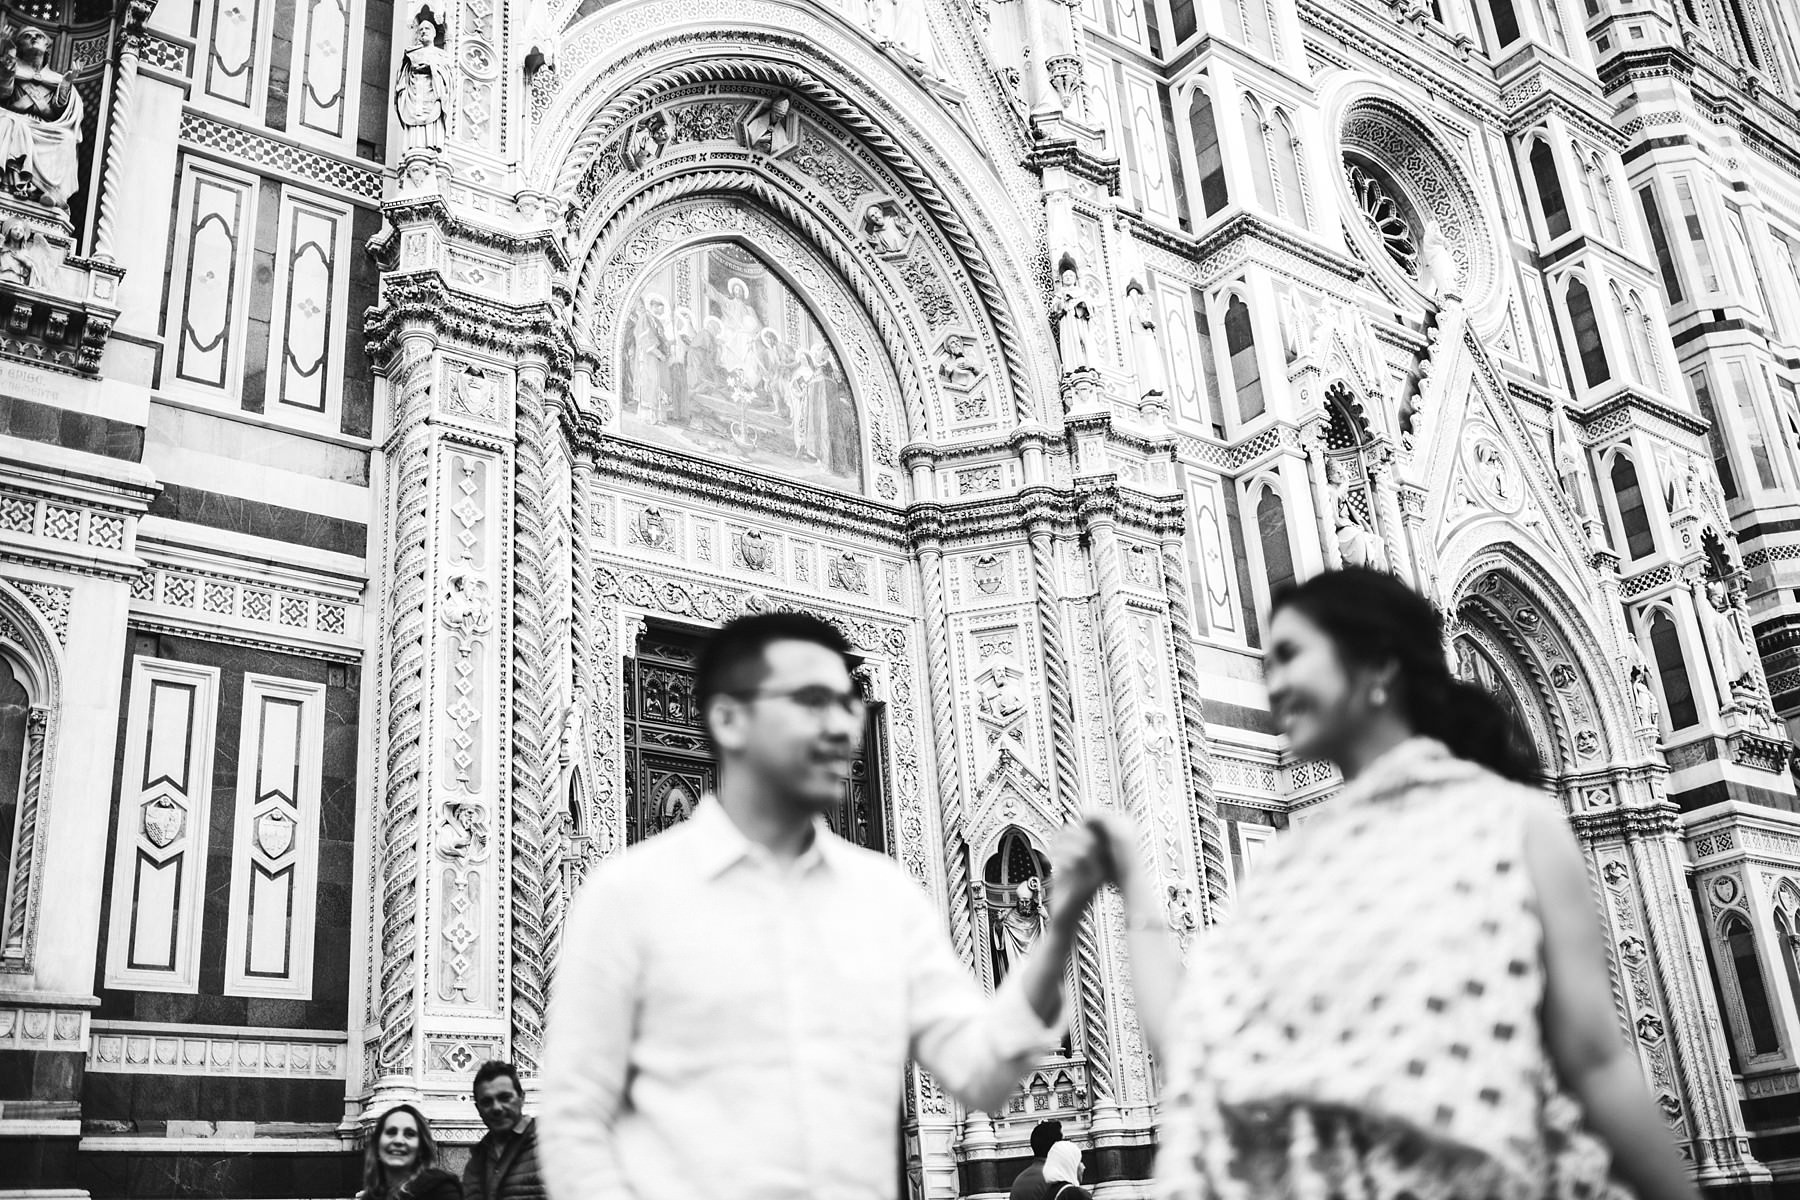 Romantic and charming engagement photo shoot in Florence, Tuscany near Duomo